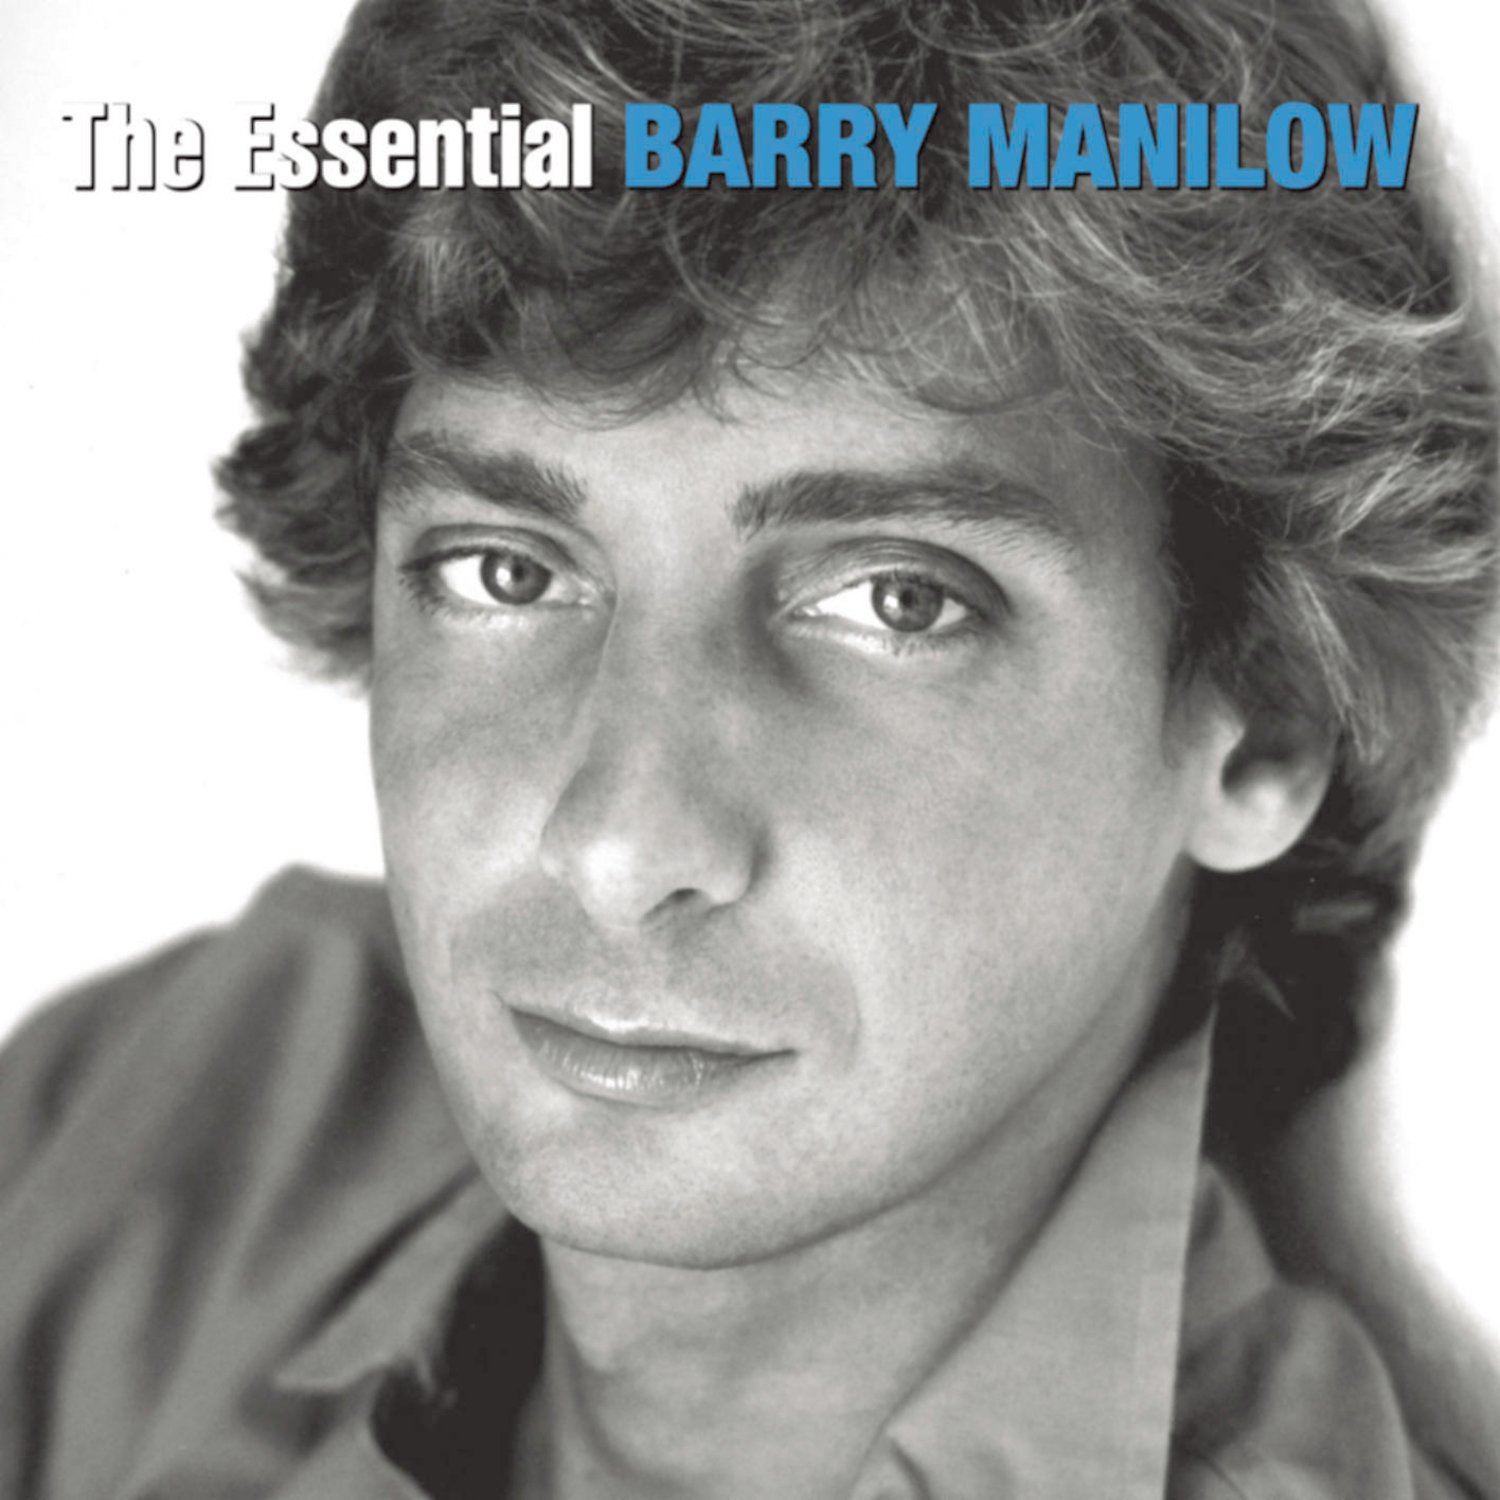 CD : Barry Manilow - The Essential Barry Manilow (Remastered, 2 Disc)